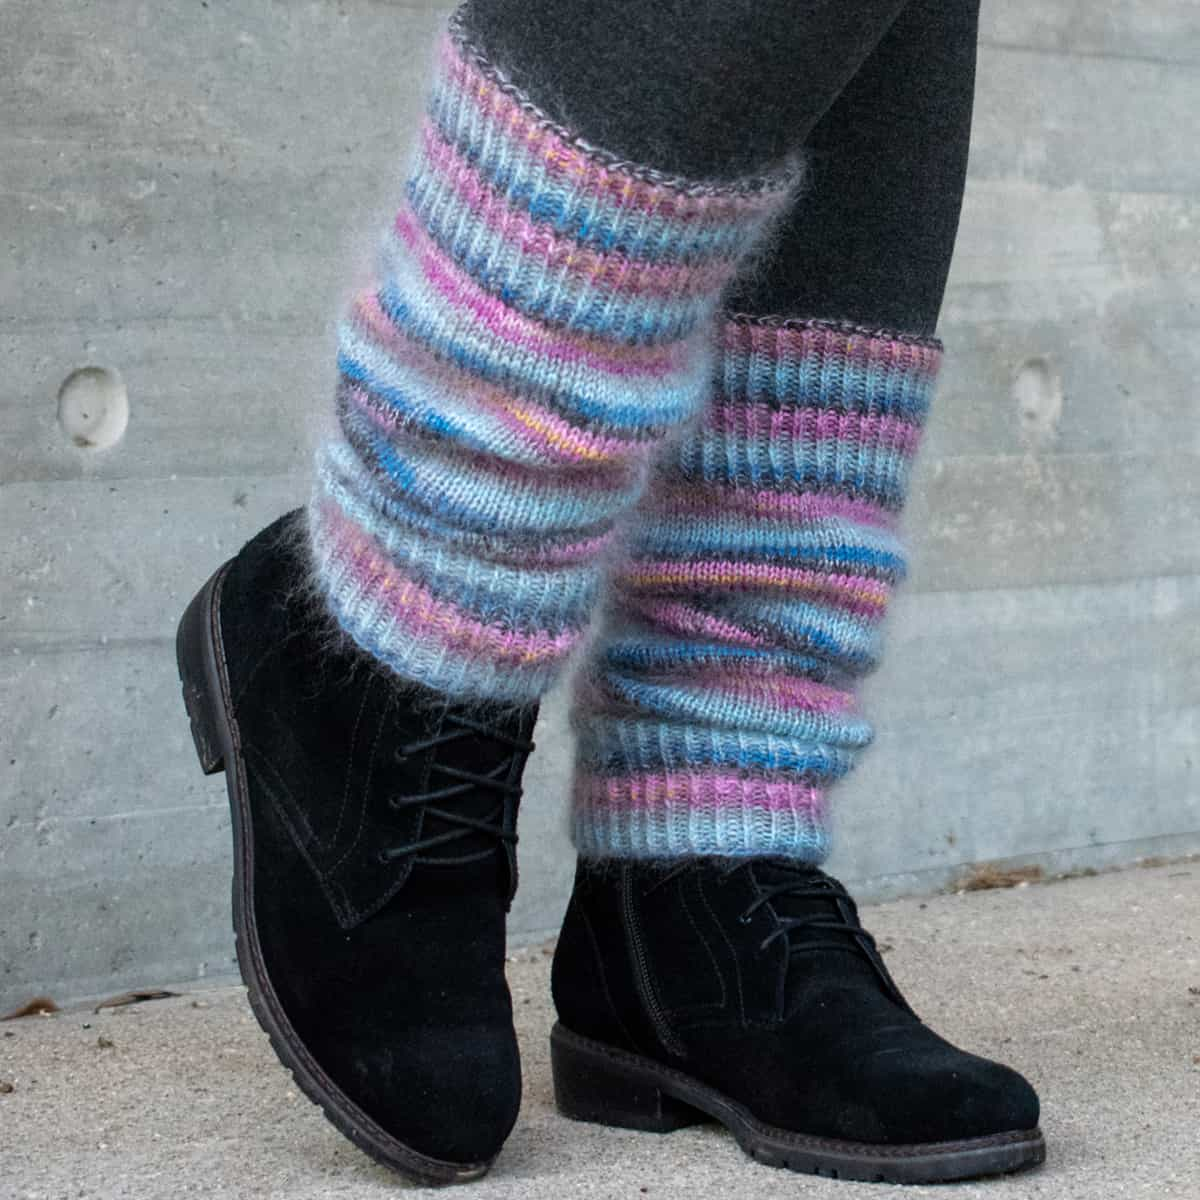 Pink and blue knit leg warmers.